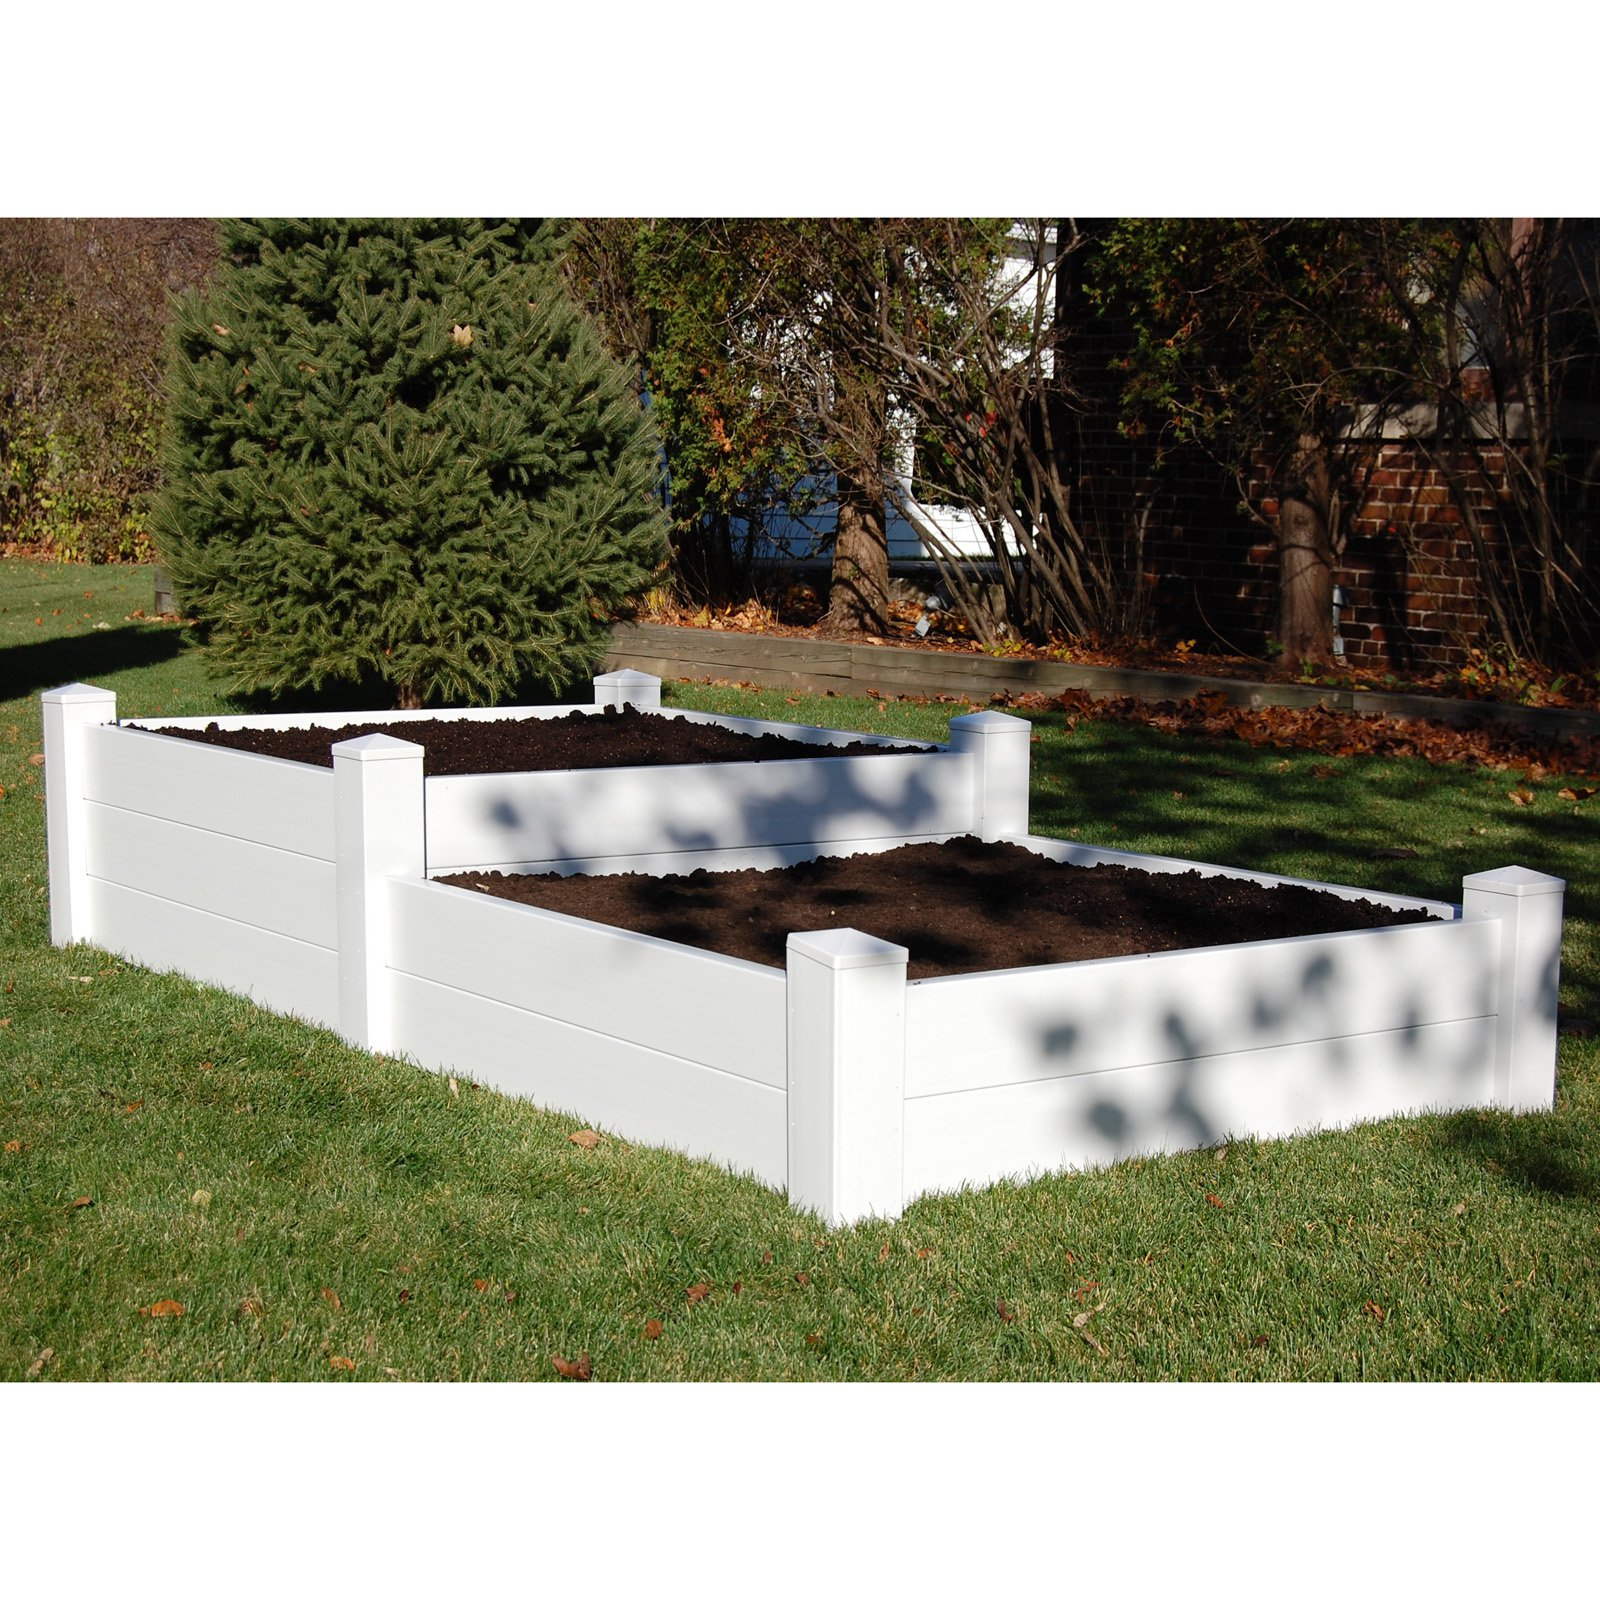 Dura-Trel 4 x 8 Rectangle Split Level Raised Planter Bed